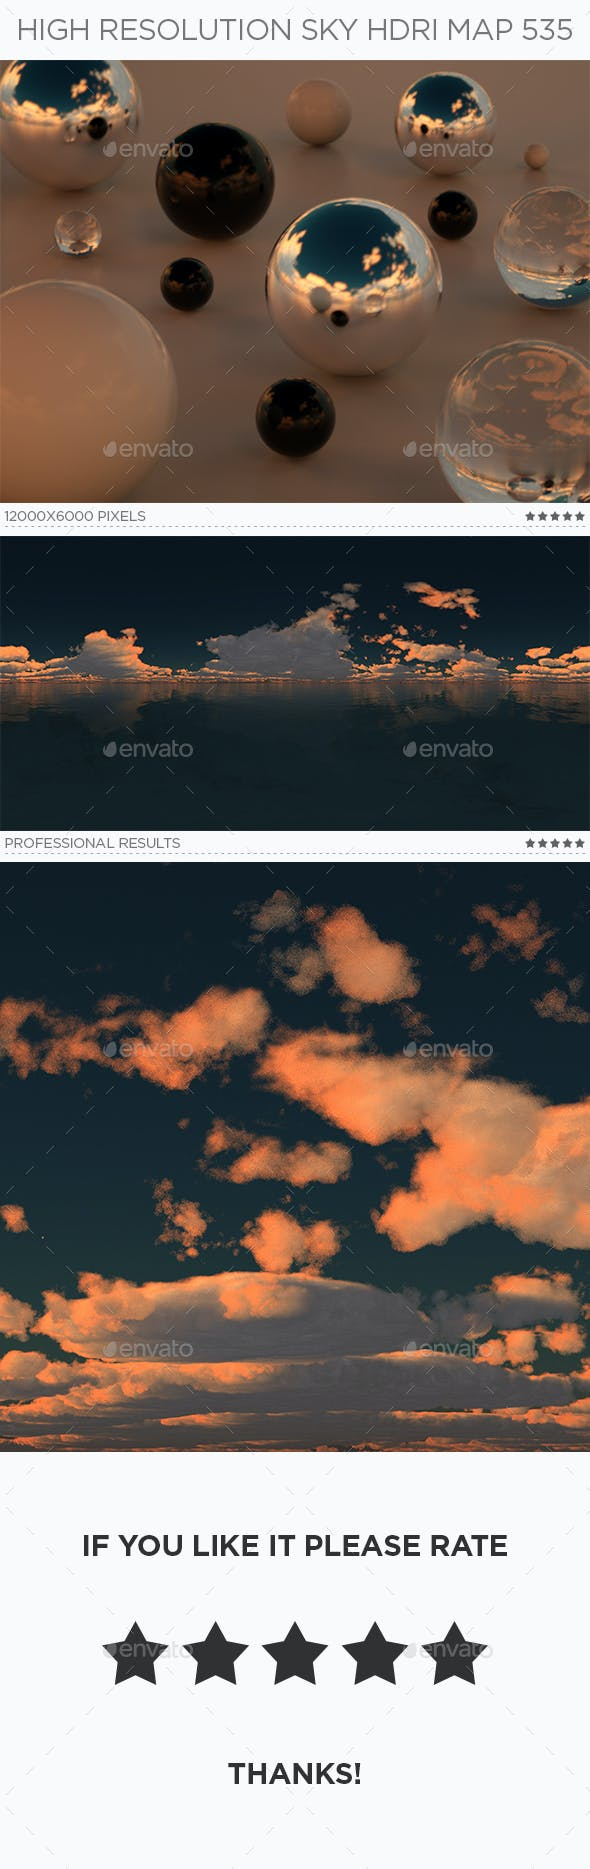 High Resolution Sky HDRi Map 535 - 3DOcean Item for Sale